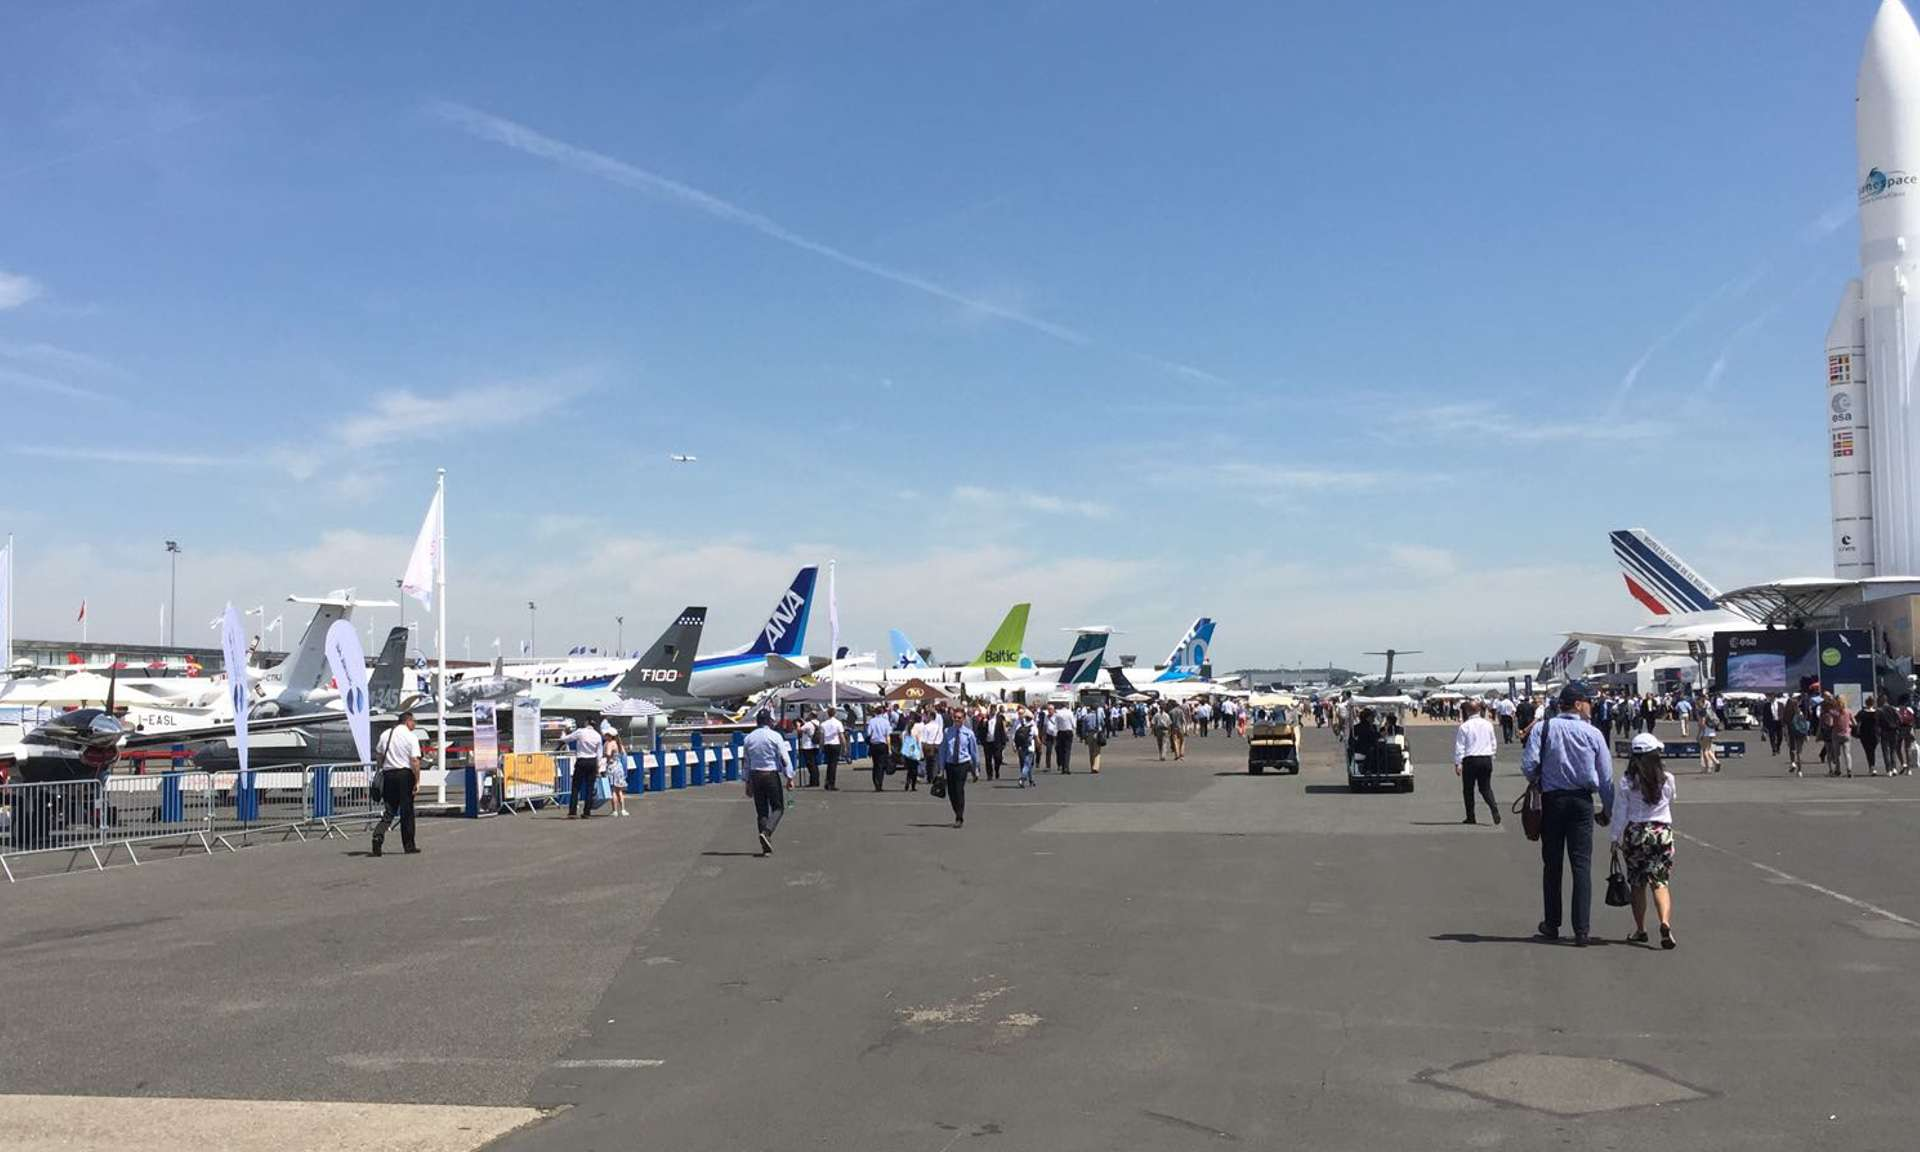 Stirling attends the Paris Airshow 2017